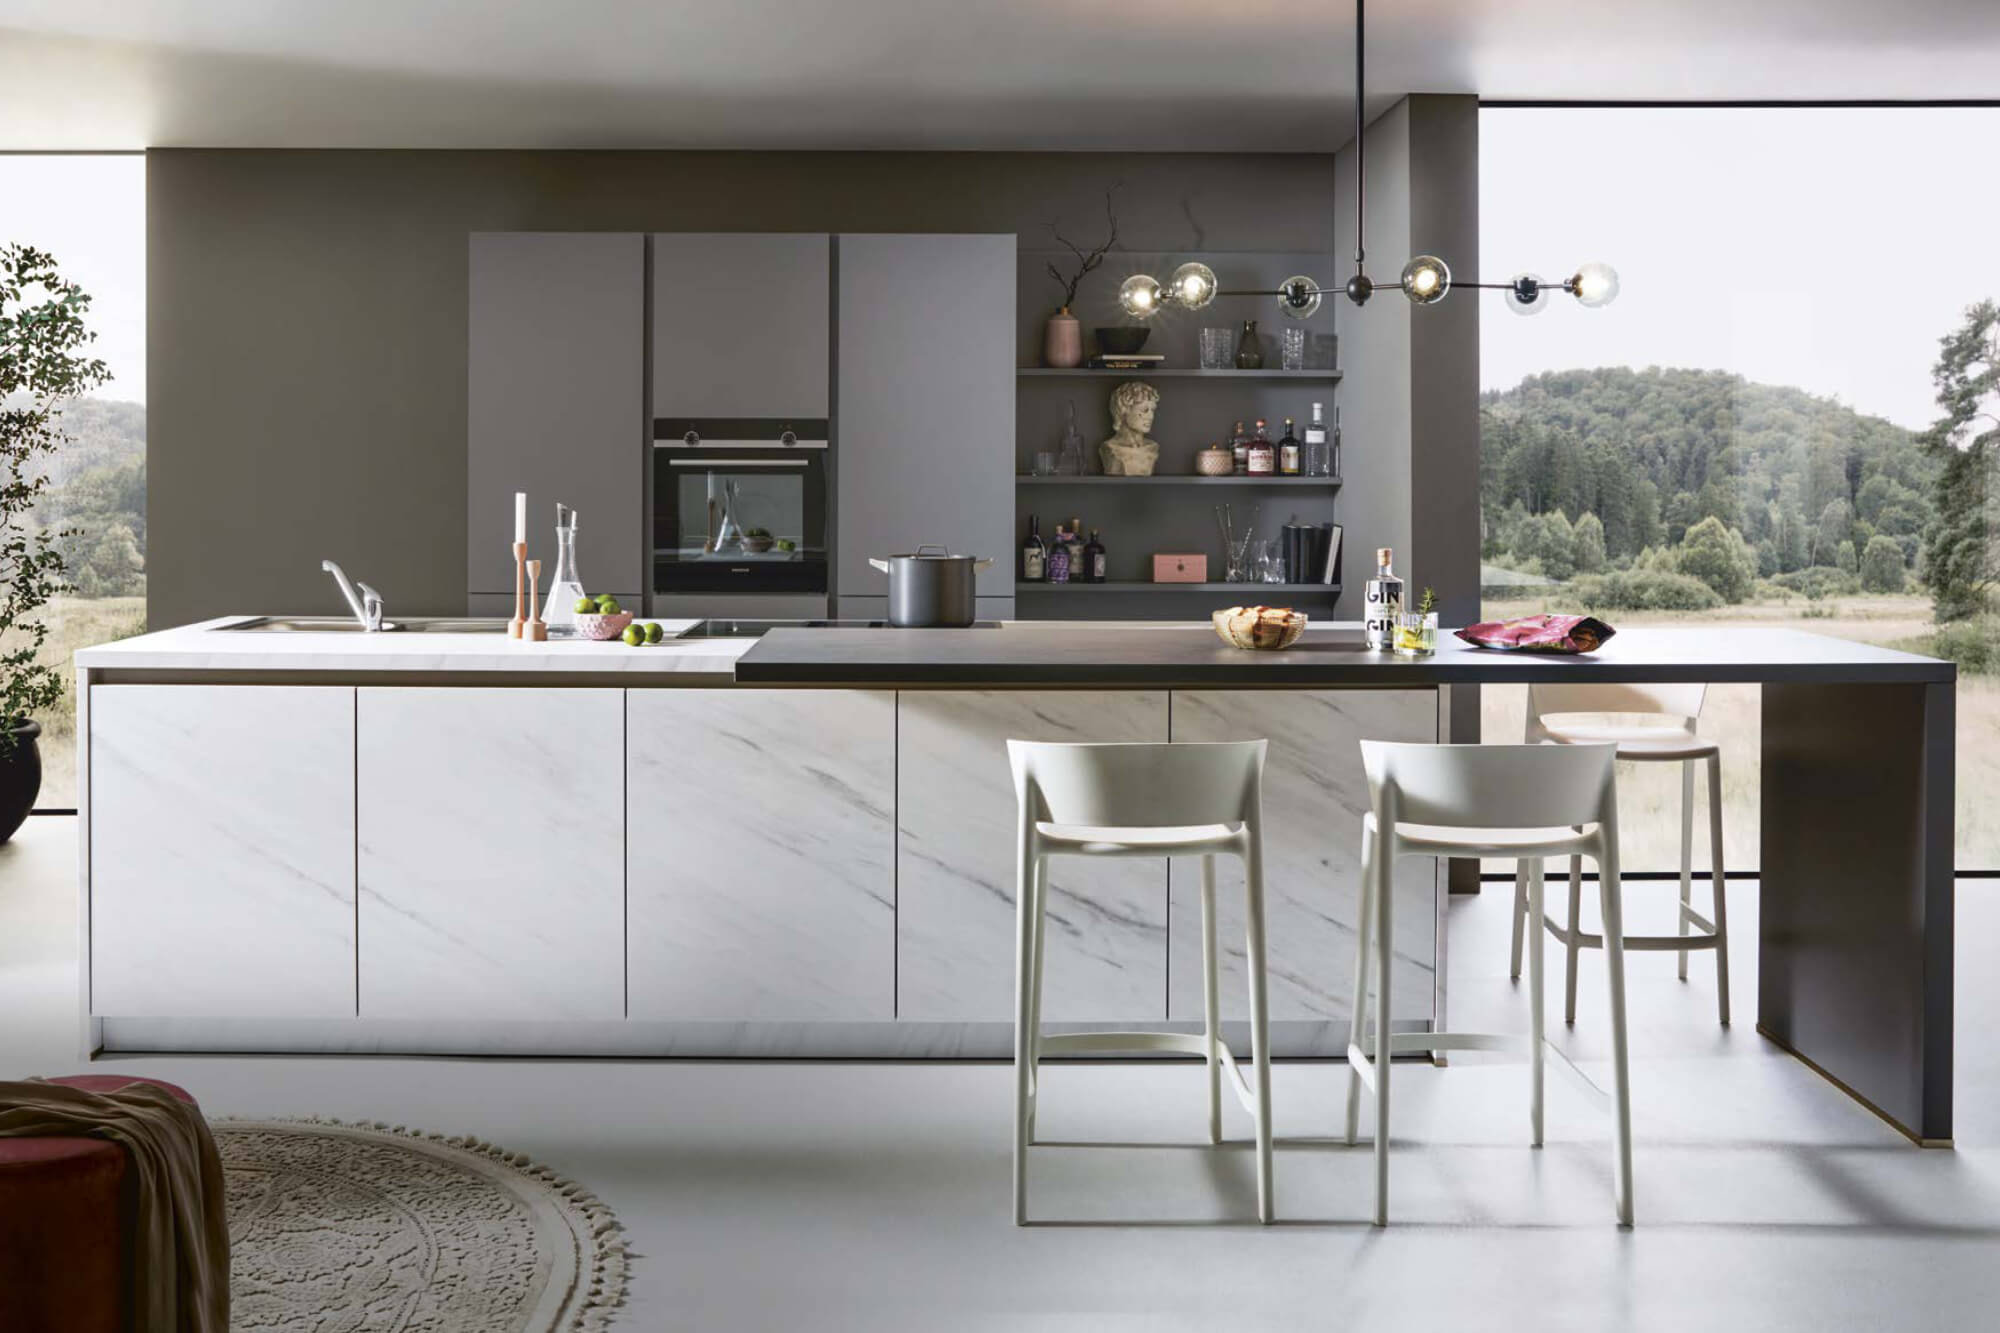 Island Kitchen with Seating